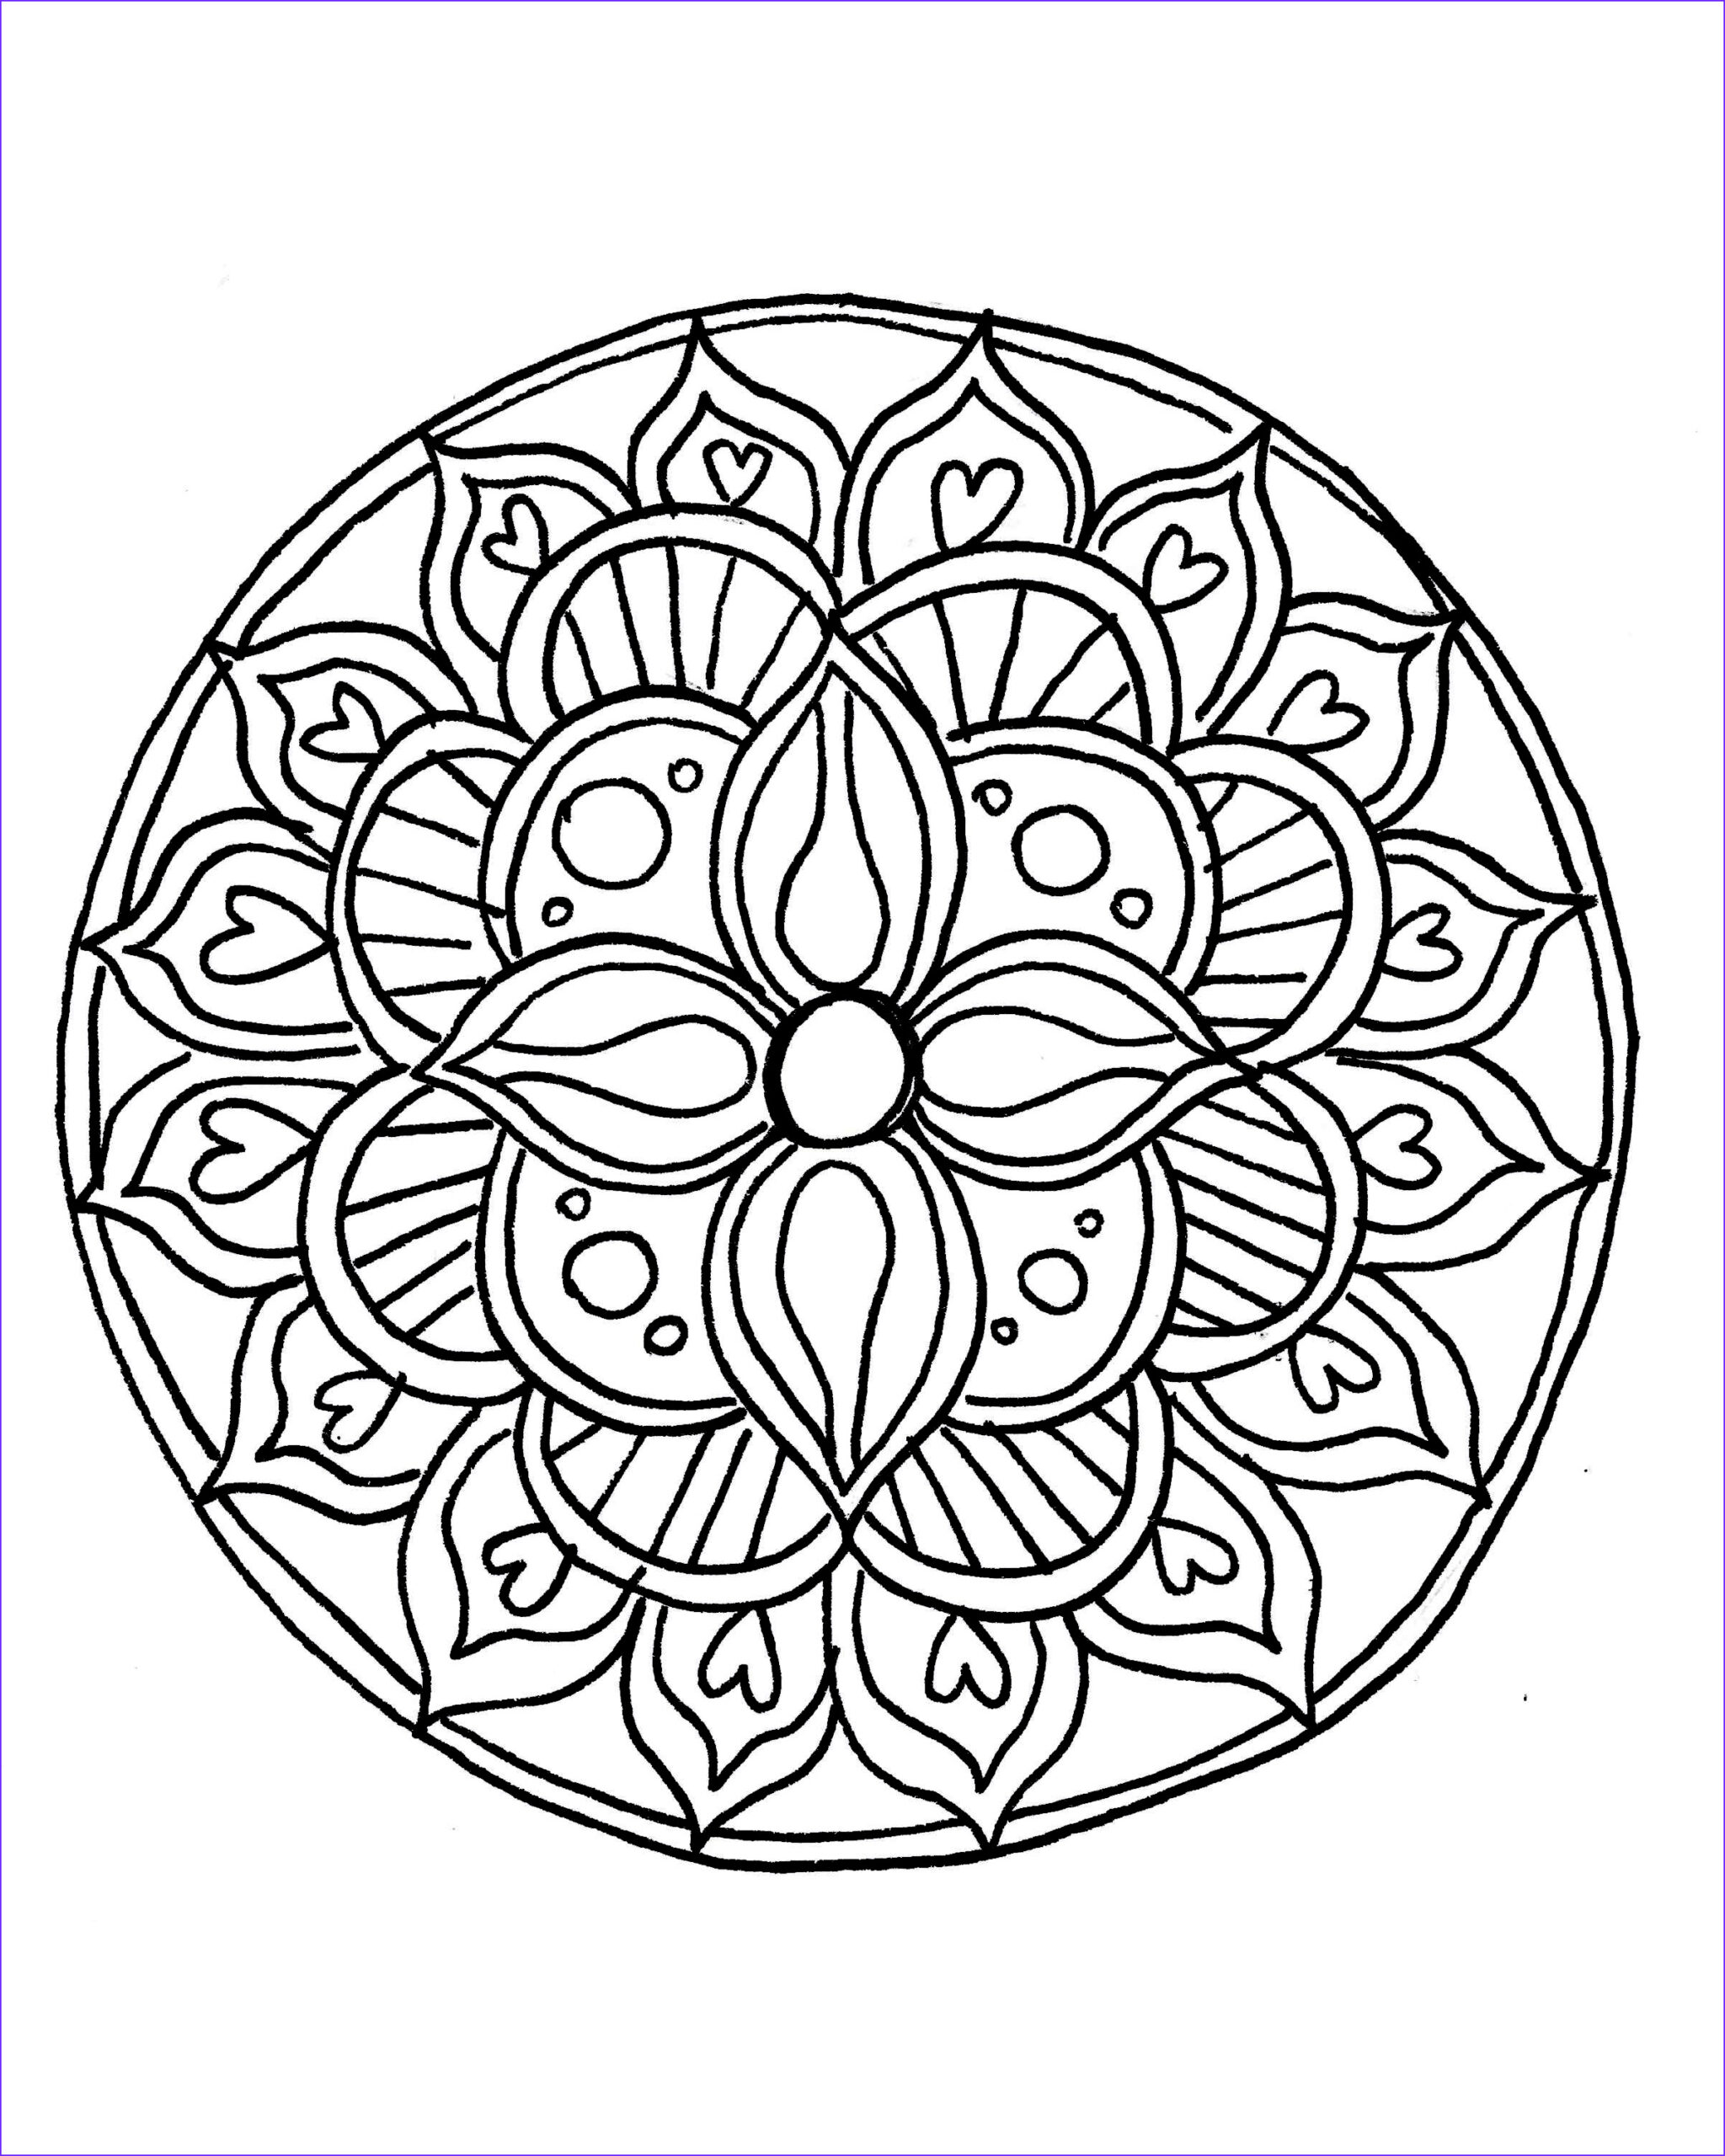 Simple Mandala Coloring Pages Elegant Photos How to Draw A Mandala with Free Coloring Pages